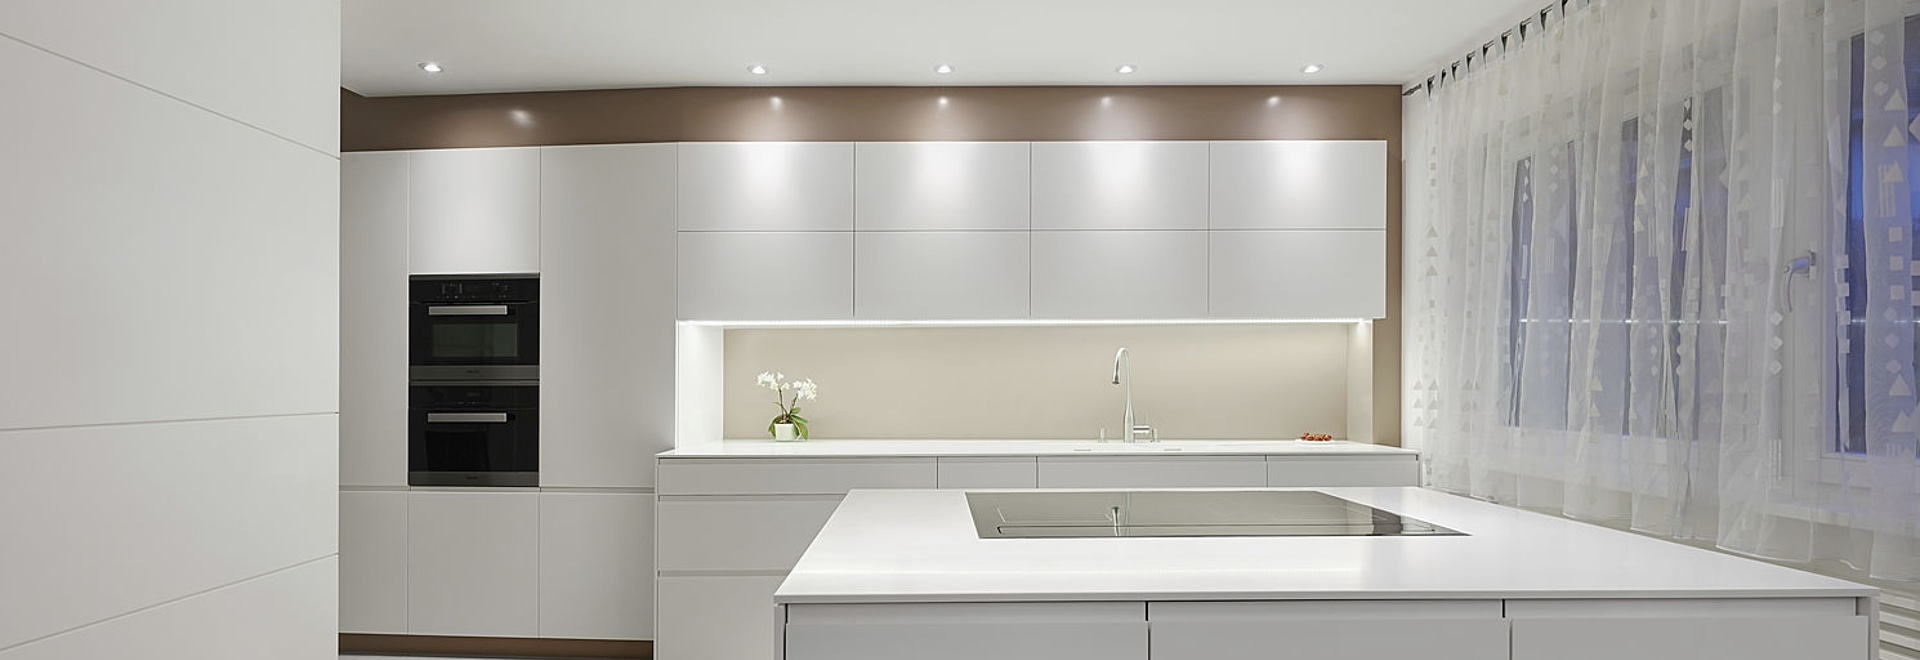 Cucine In Corian. Cheap With Cucine In Corian. Affordable With ...